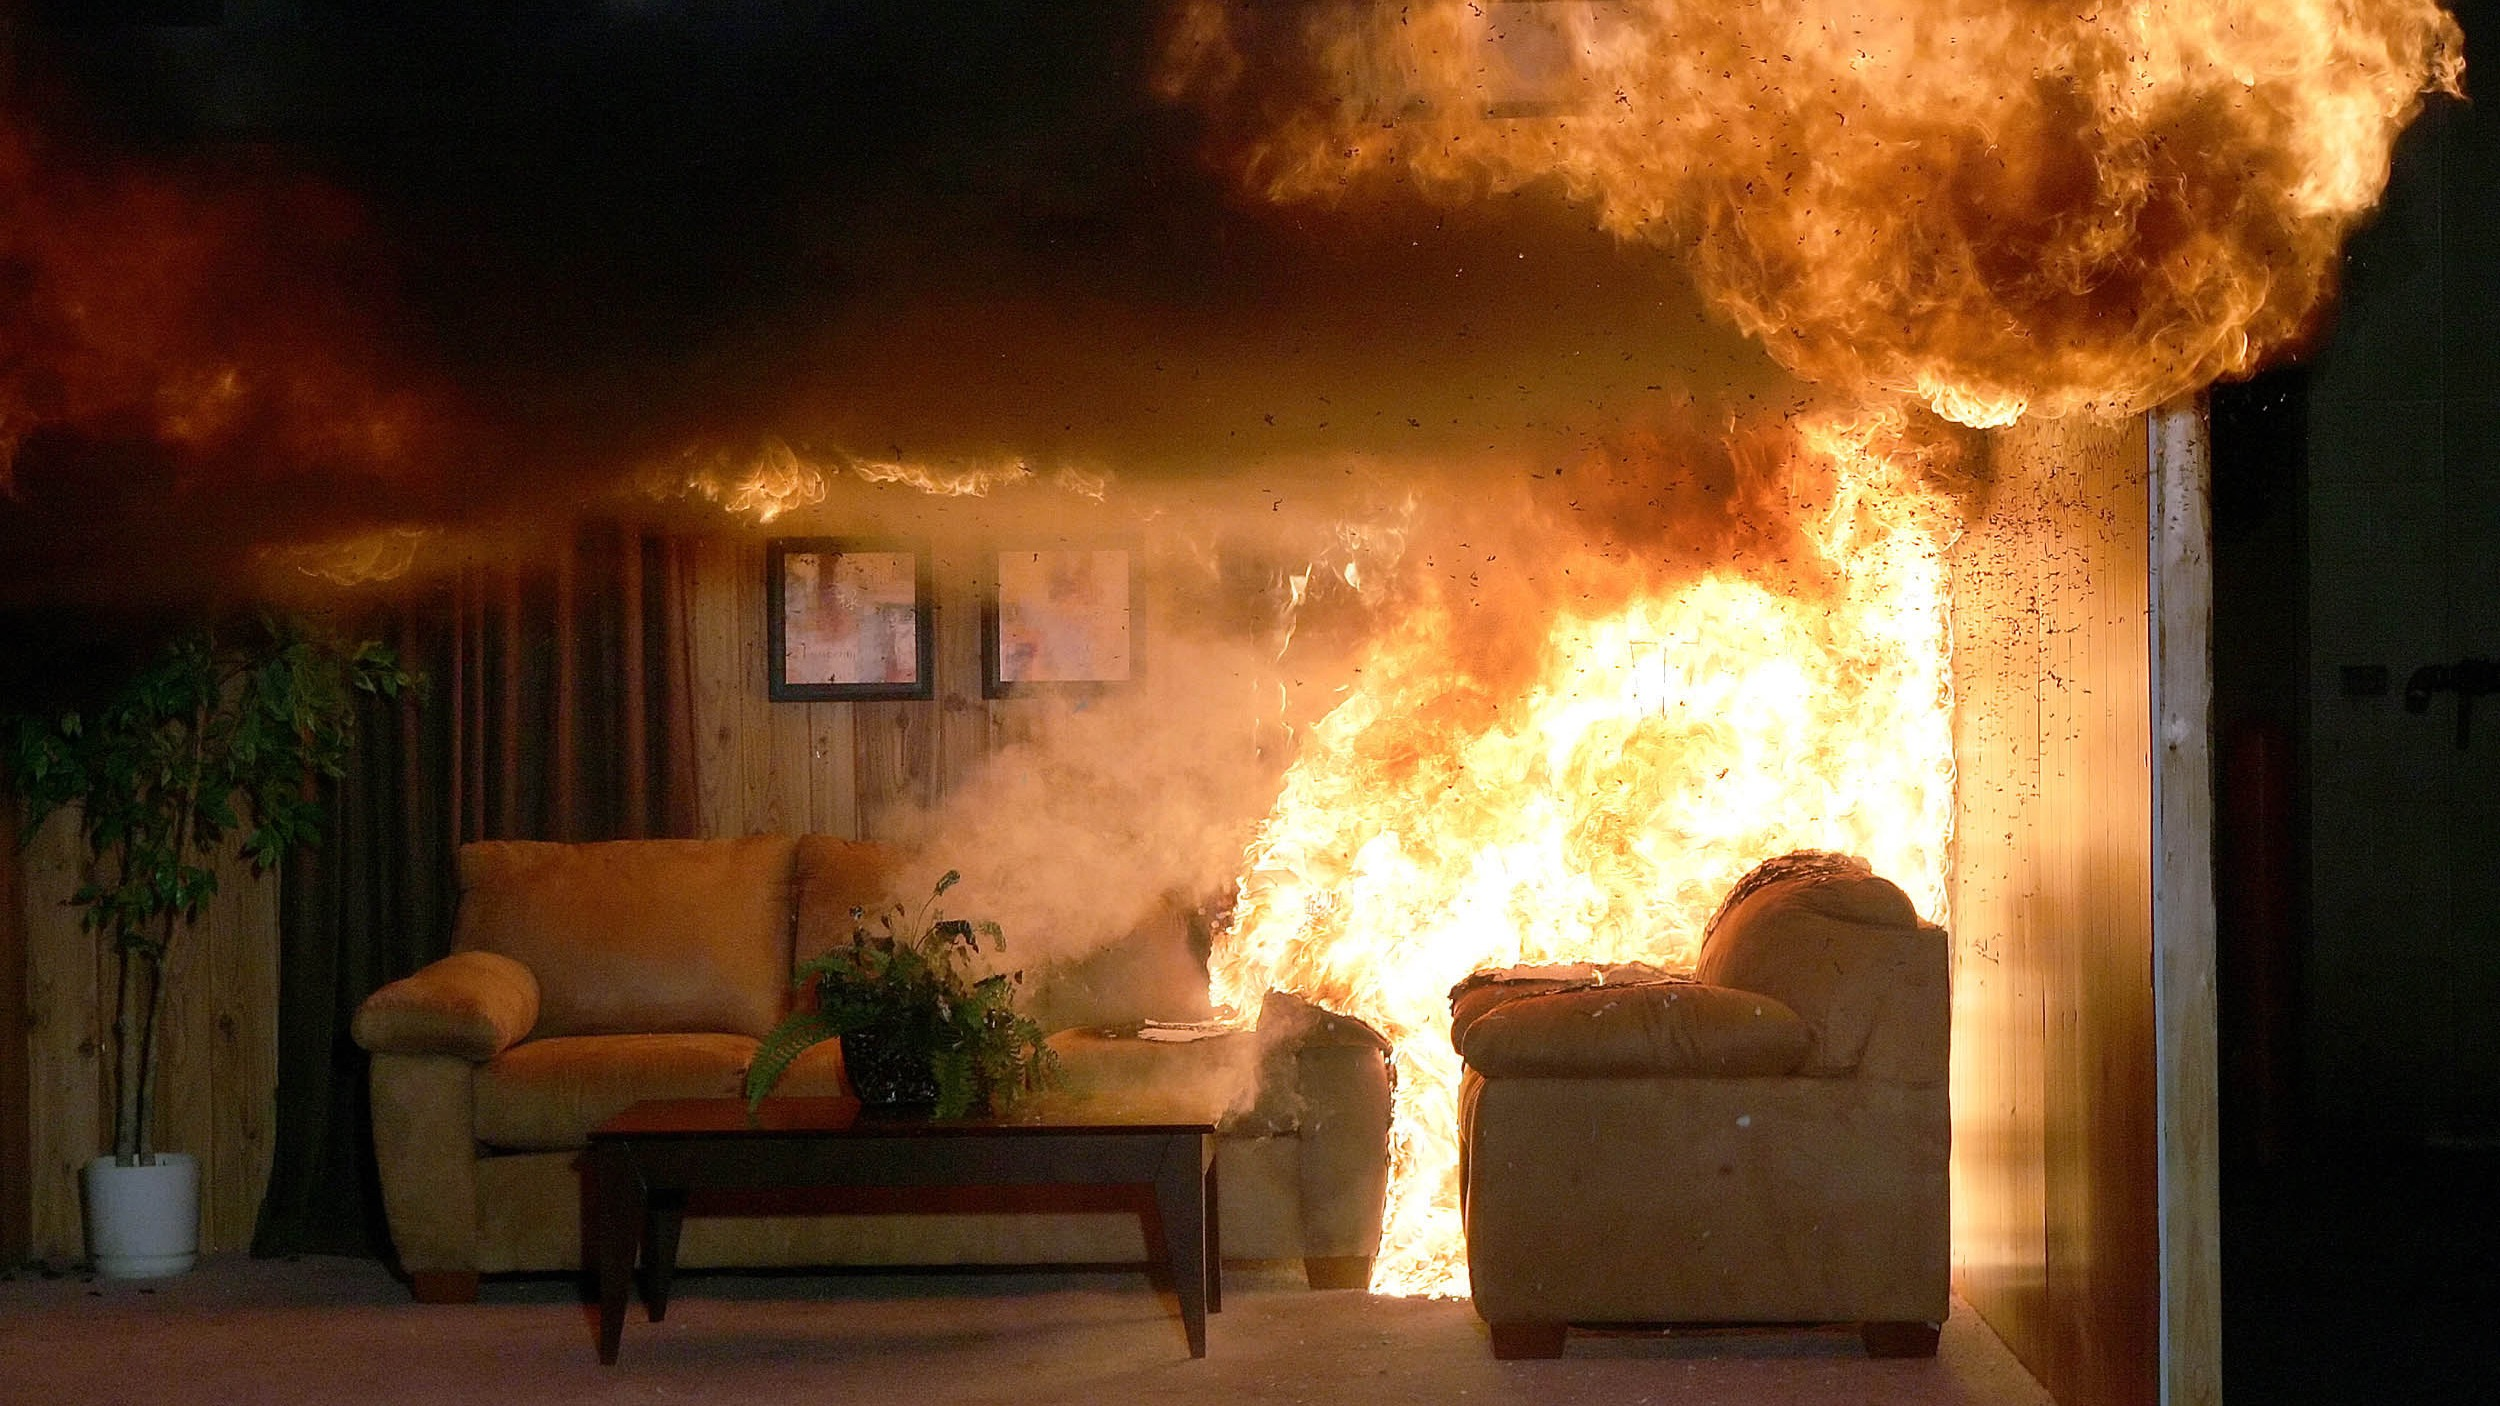 A living room, constructed by Underwriters Laboratory workers, is set on fire to test how fire-proof certain products are at the UL facility in Northbrook, Illinois August 24, 2006. REUTERS/Frank Polich (UNITED STATES) - RTR1IX76